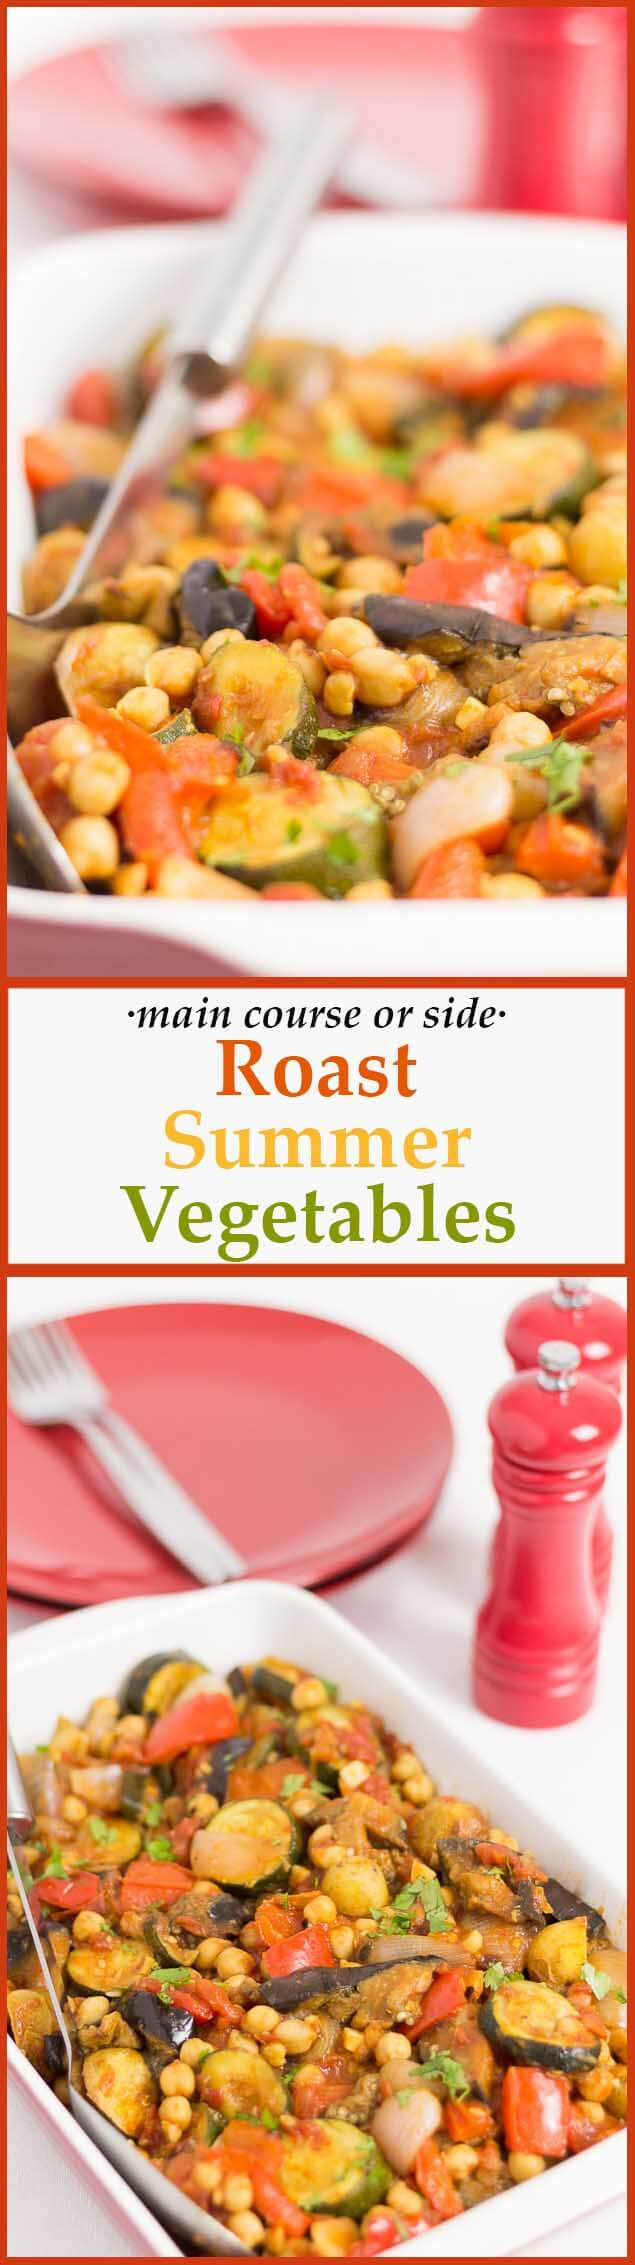 Not only is this roast summer vegetables recipe vibrant and flavoursome but it's also absolutely perfect as a way to use up those left over veggies or suitable as a side.